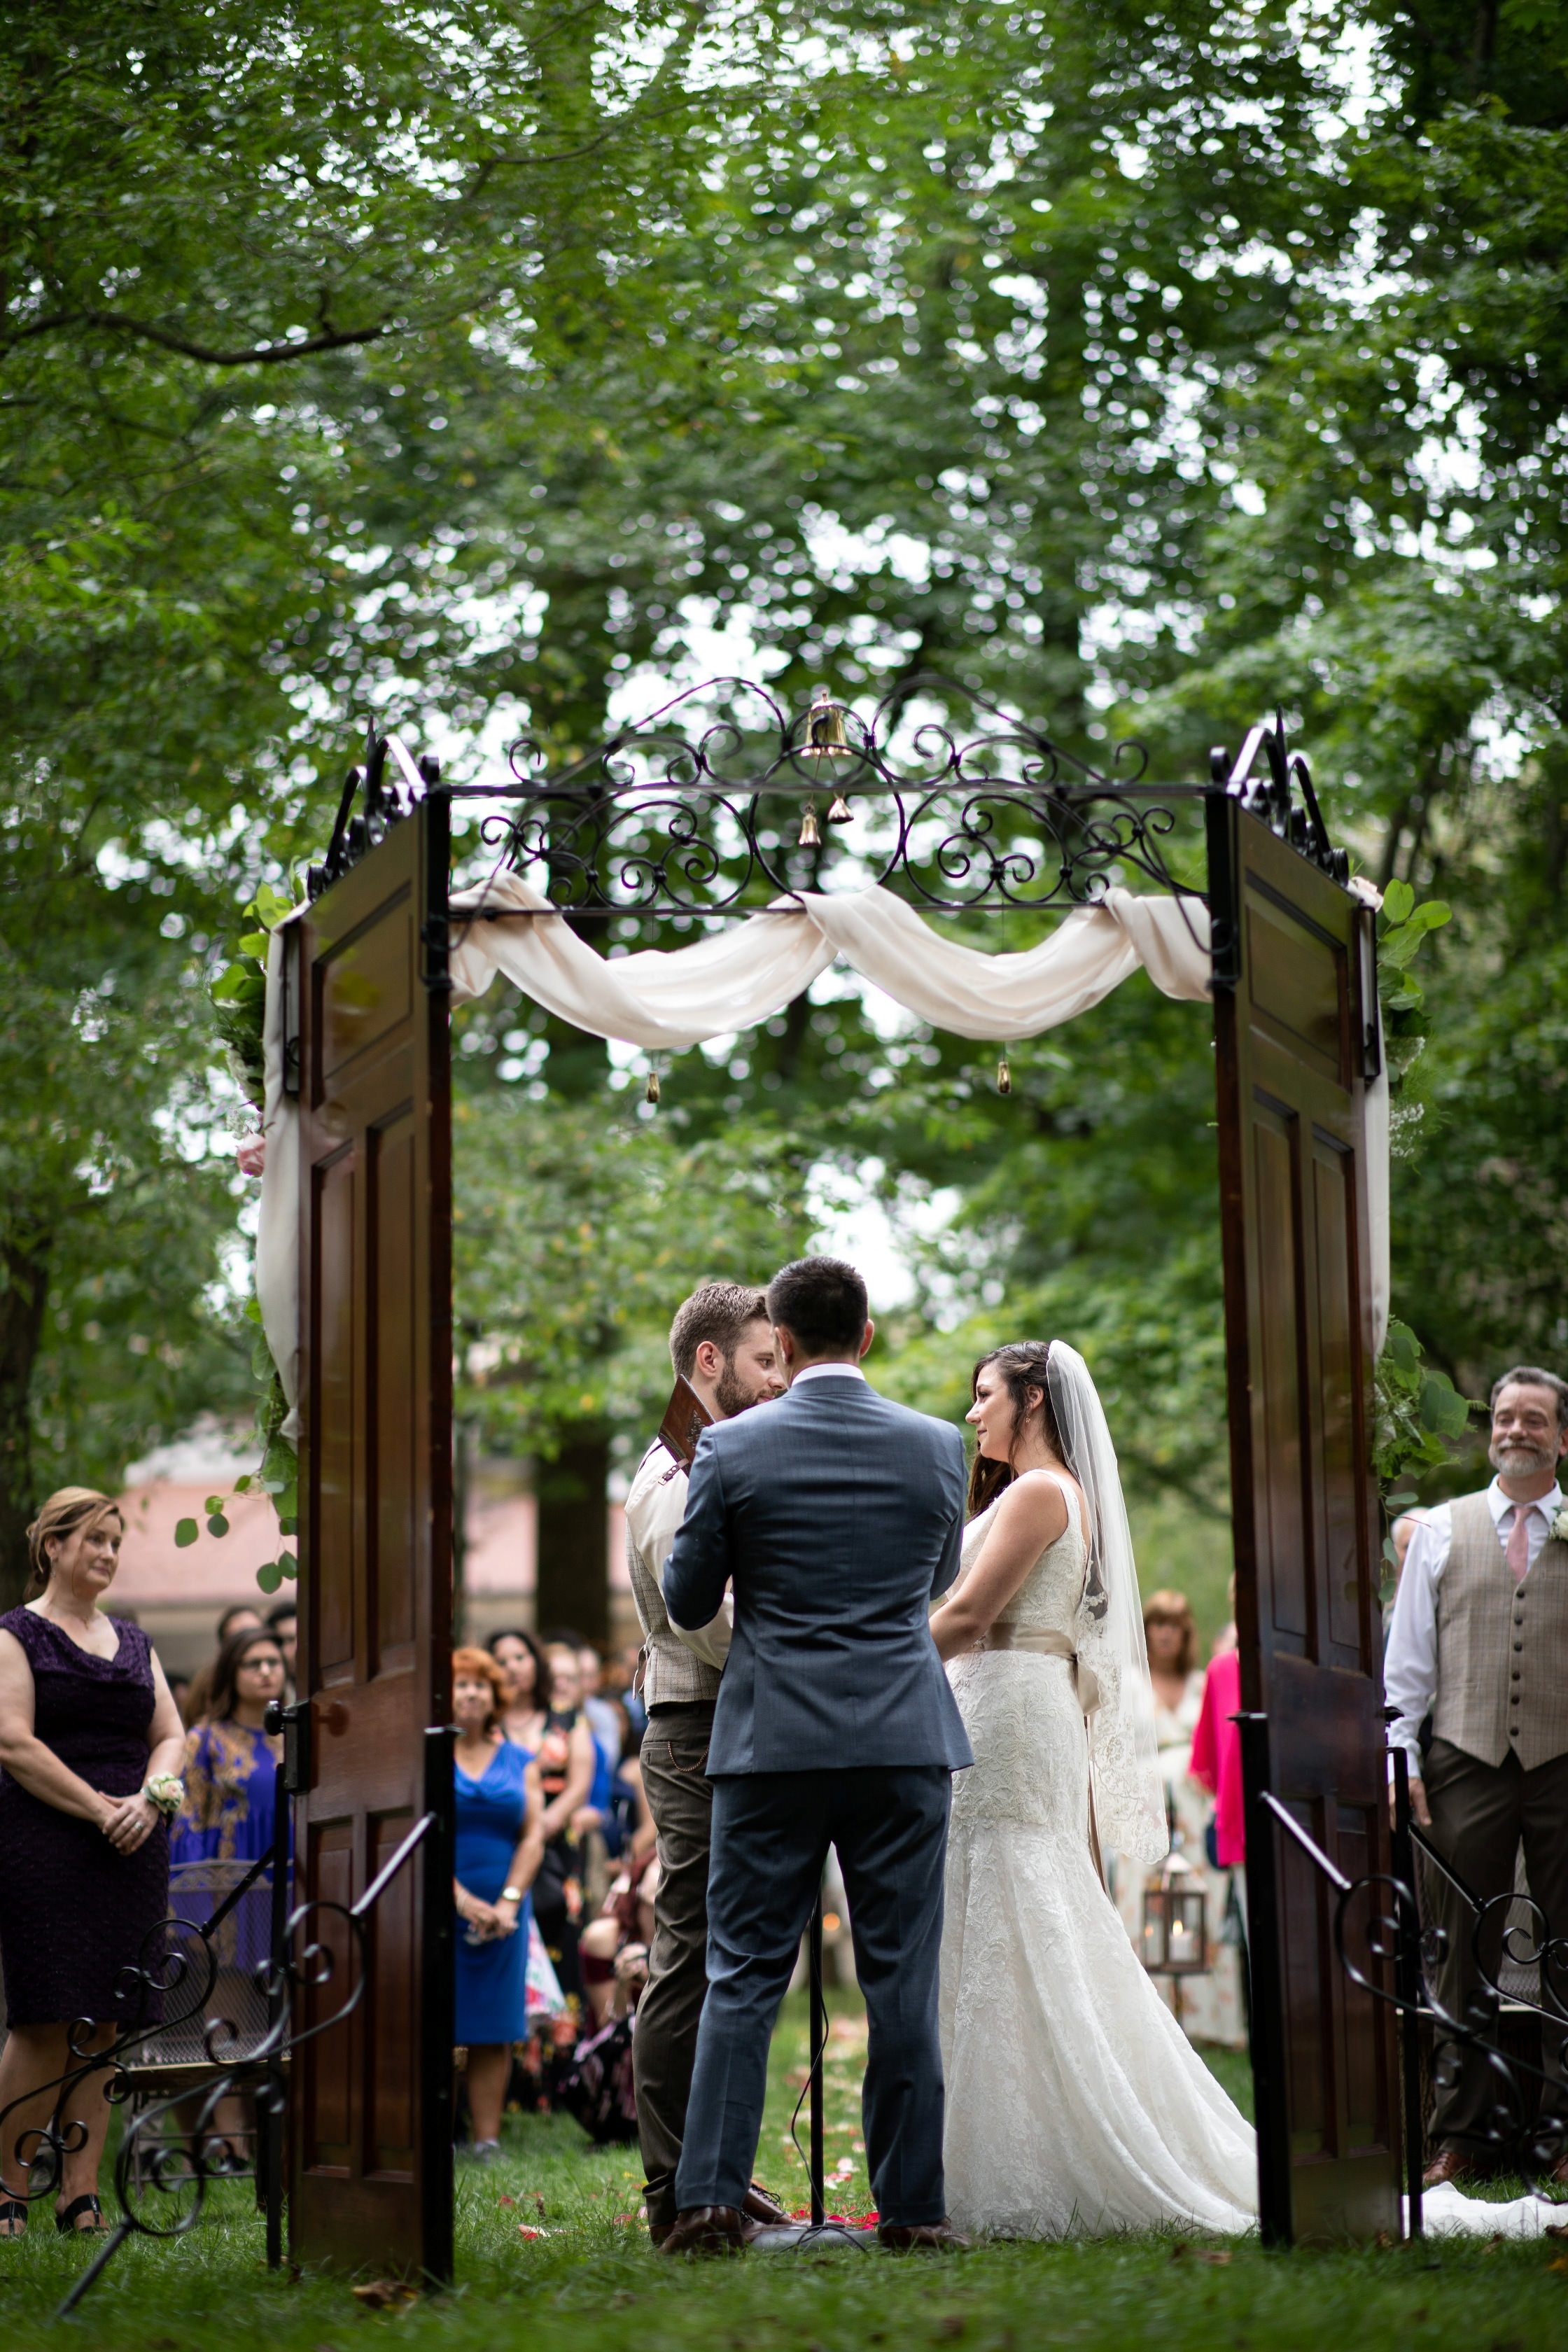 outdoors backyard wedding ceremony